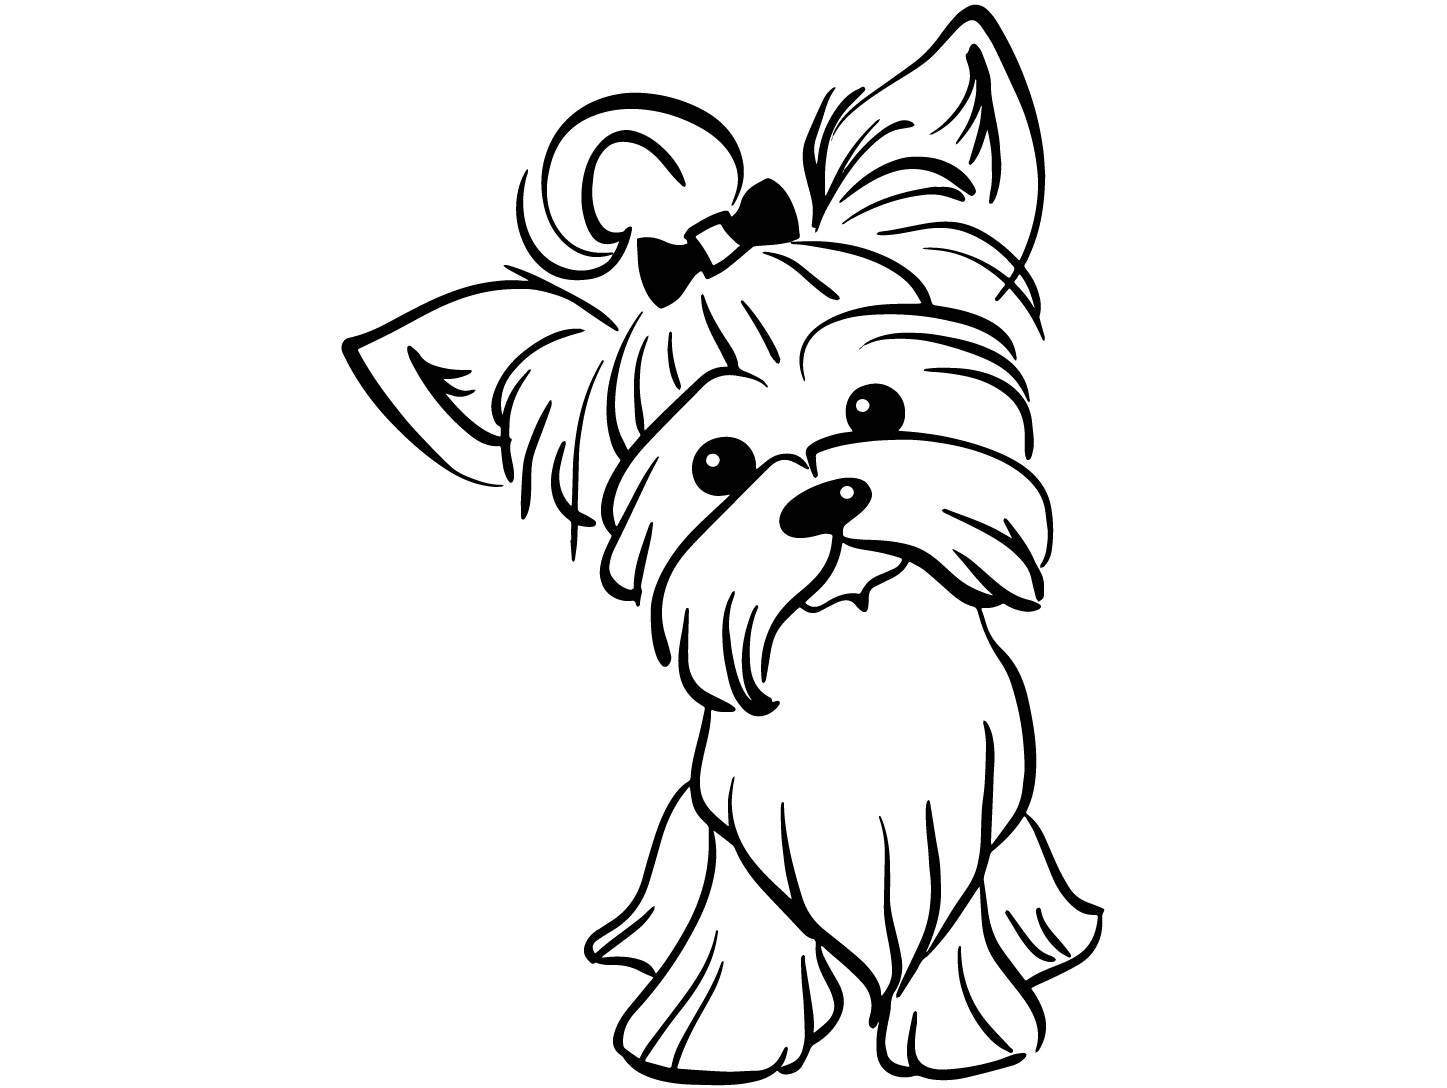 Yorkshire Terrier 3 Yorkie Dog Breed K-9 Pedigree Purebred